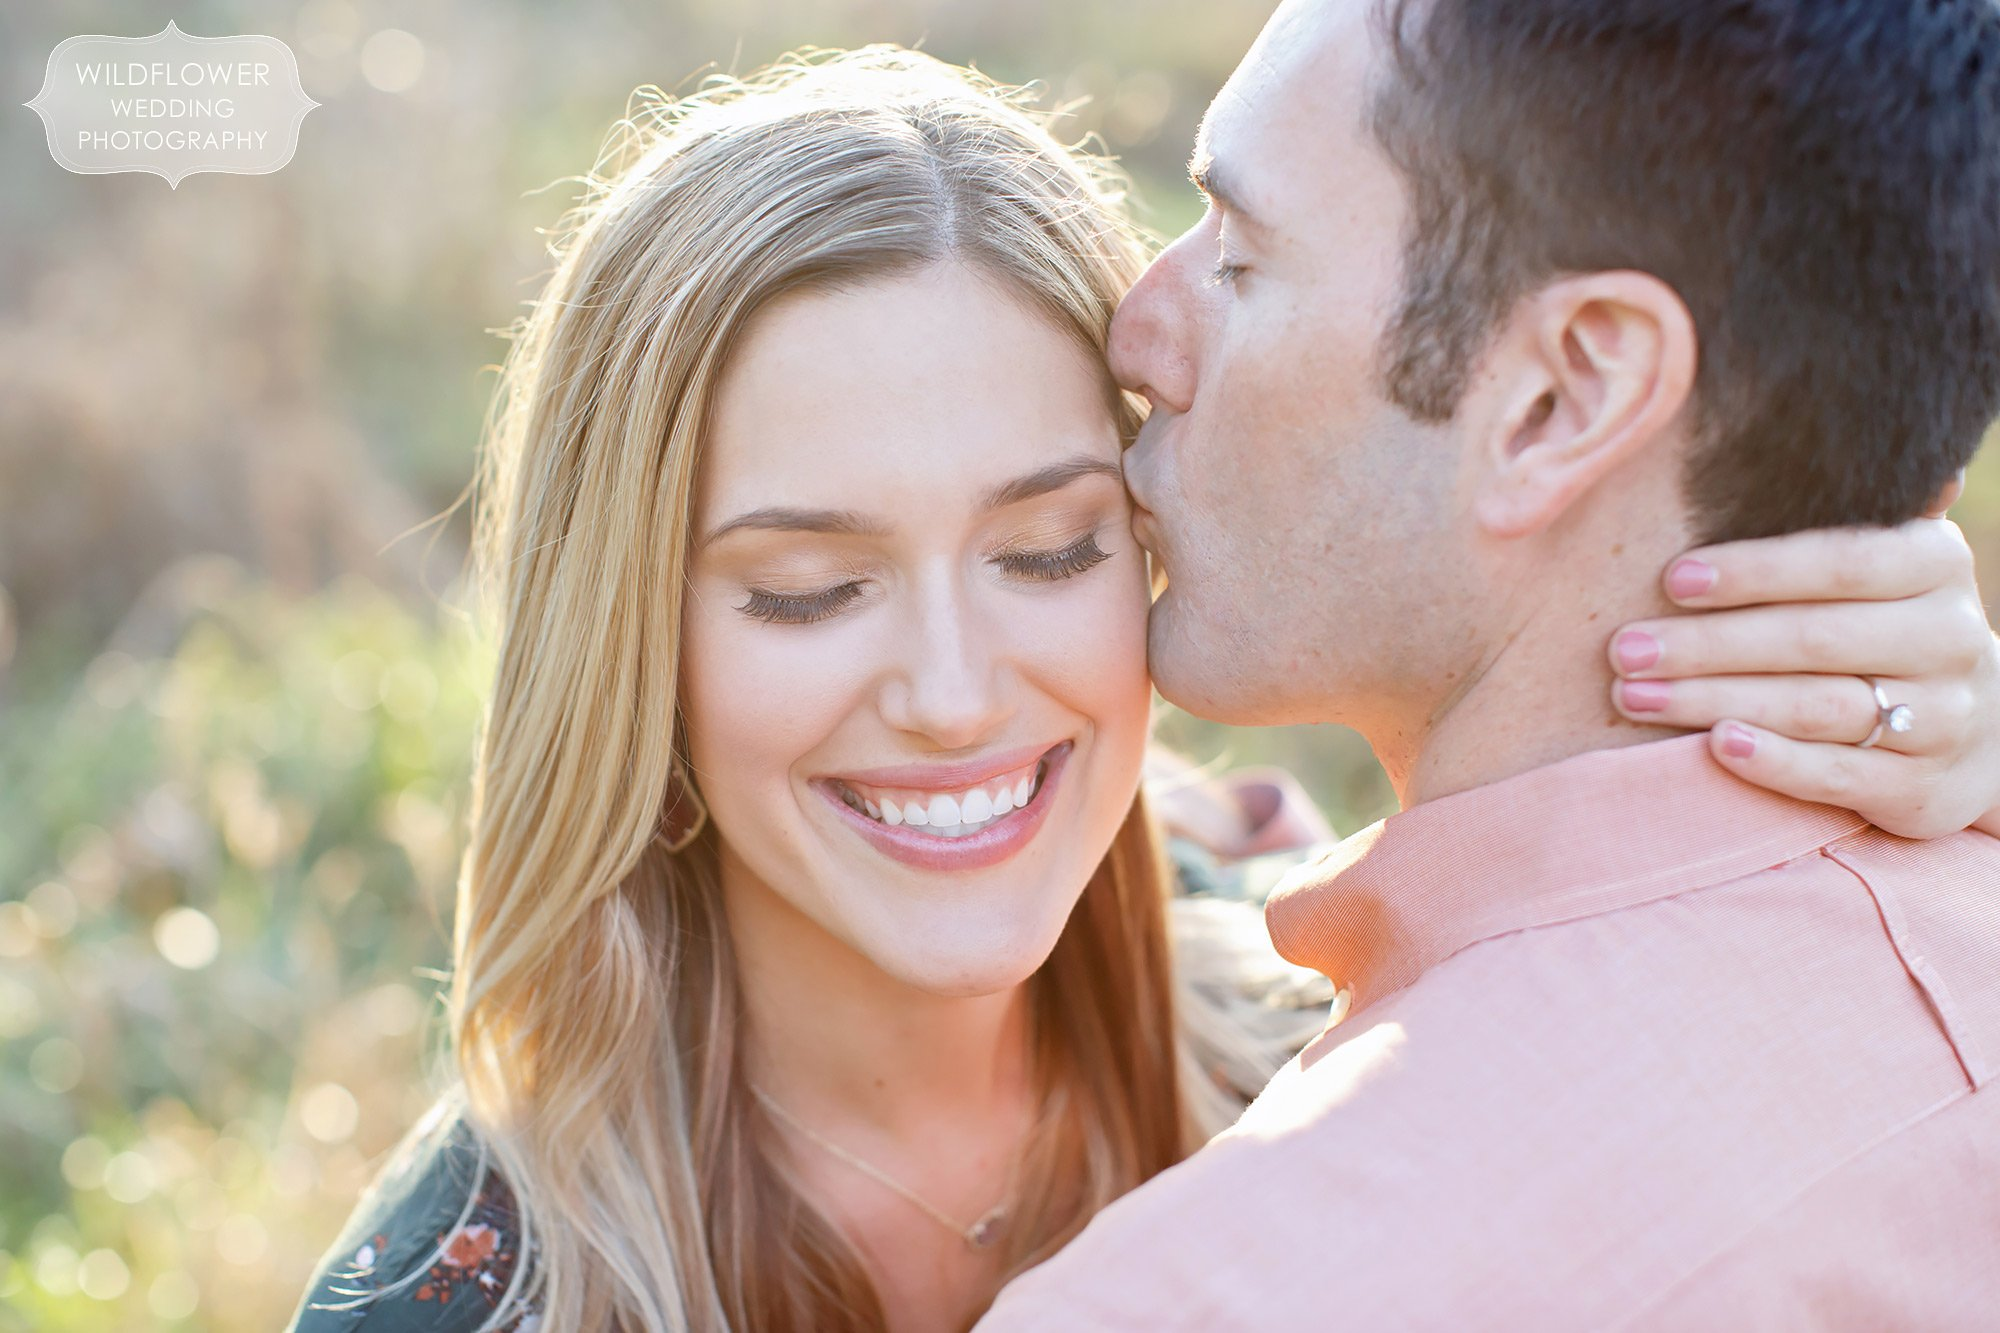 Anthropologie engagement photography pose with guy kissing girl on the cheek in sunbursty light at Grindstone Park.